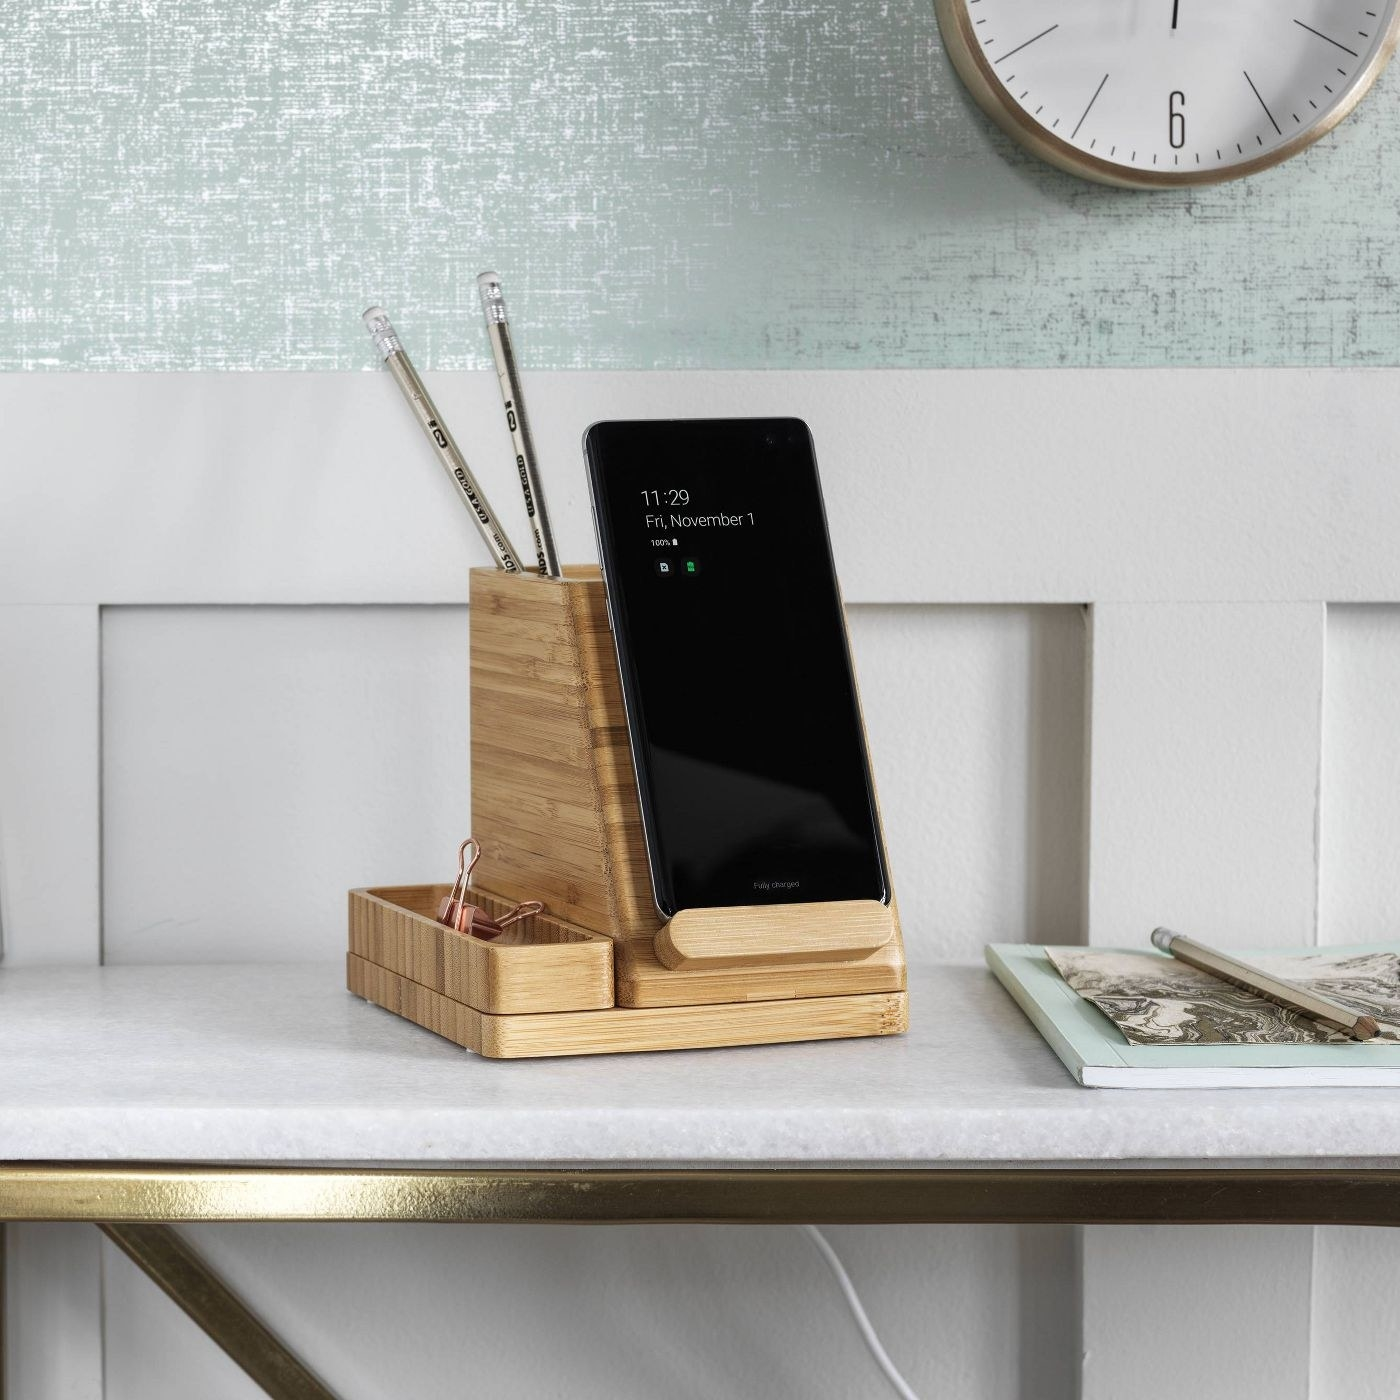 The desk storage unit holding a phone and several pencils